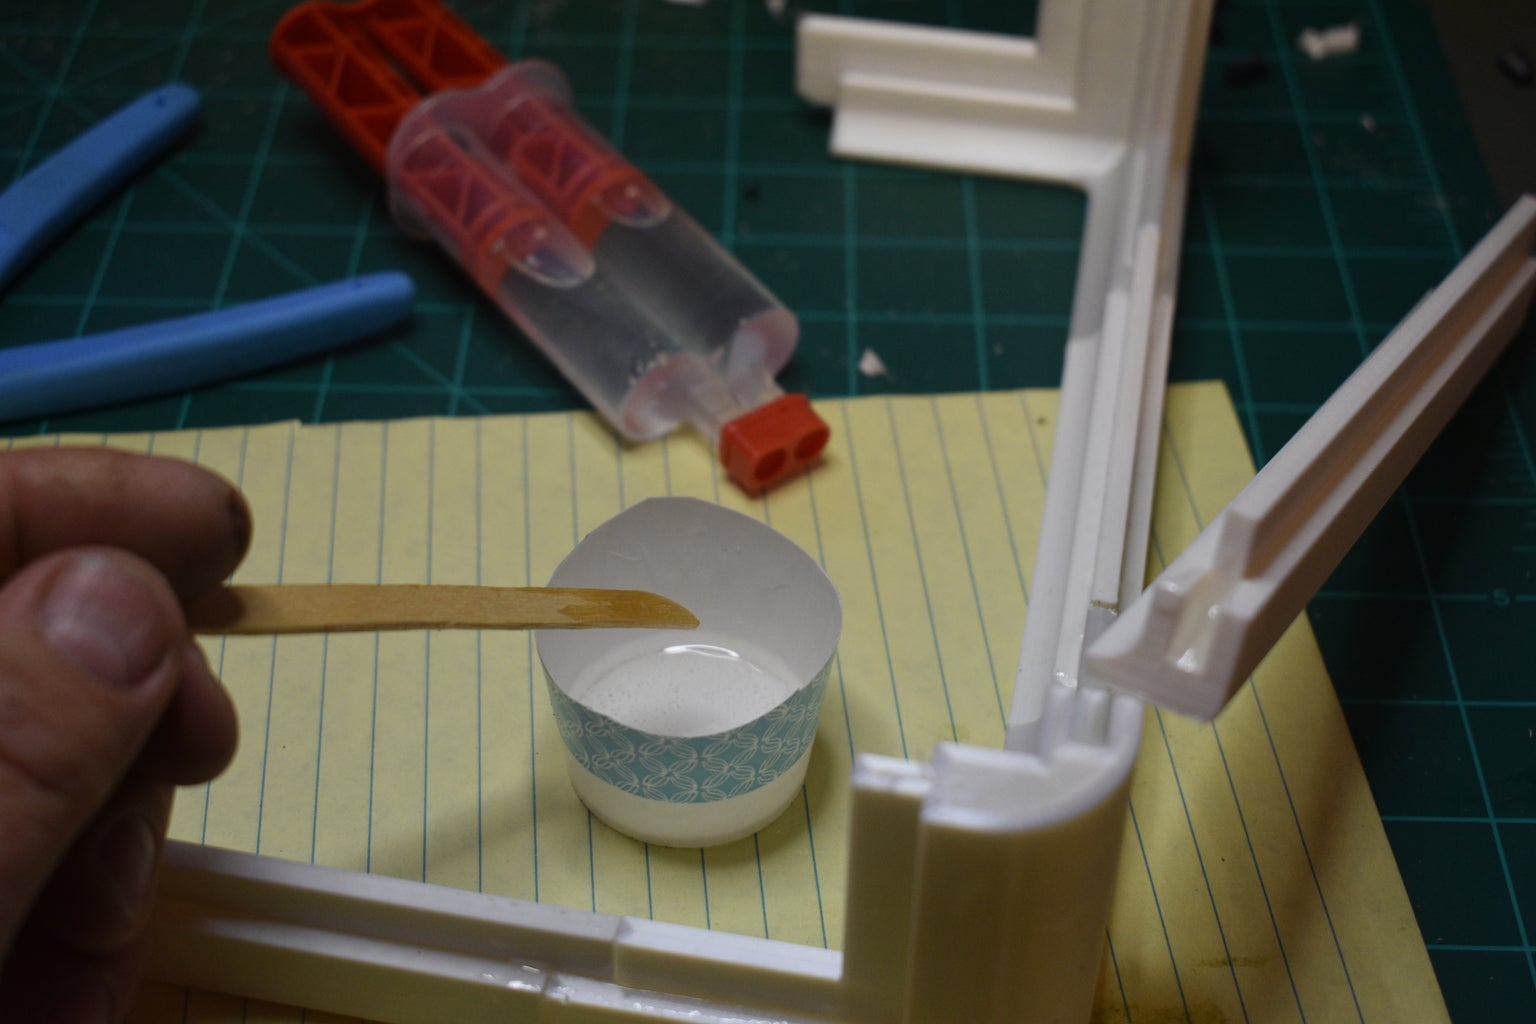 Mix Small Amount of Epoxy to Test and Glue a Few Pieces Together